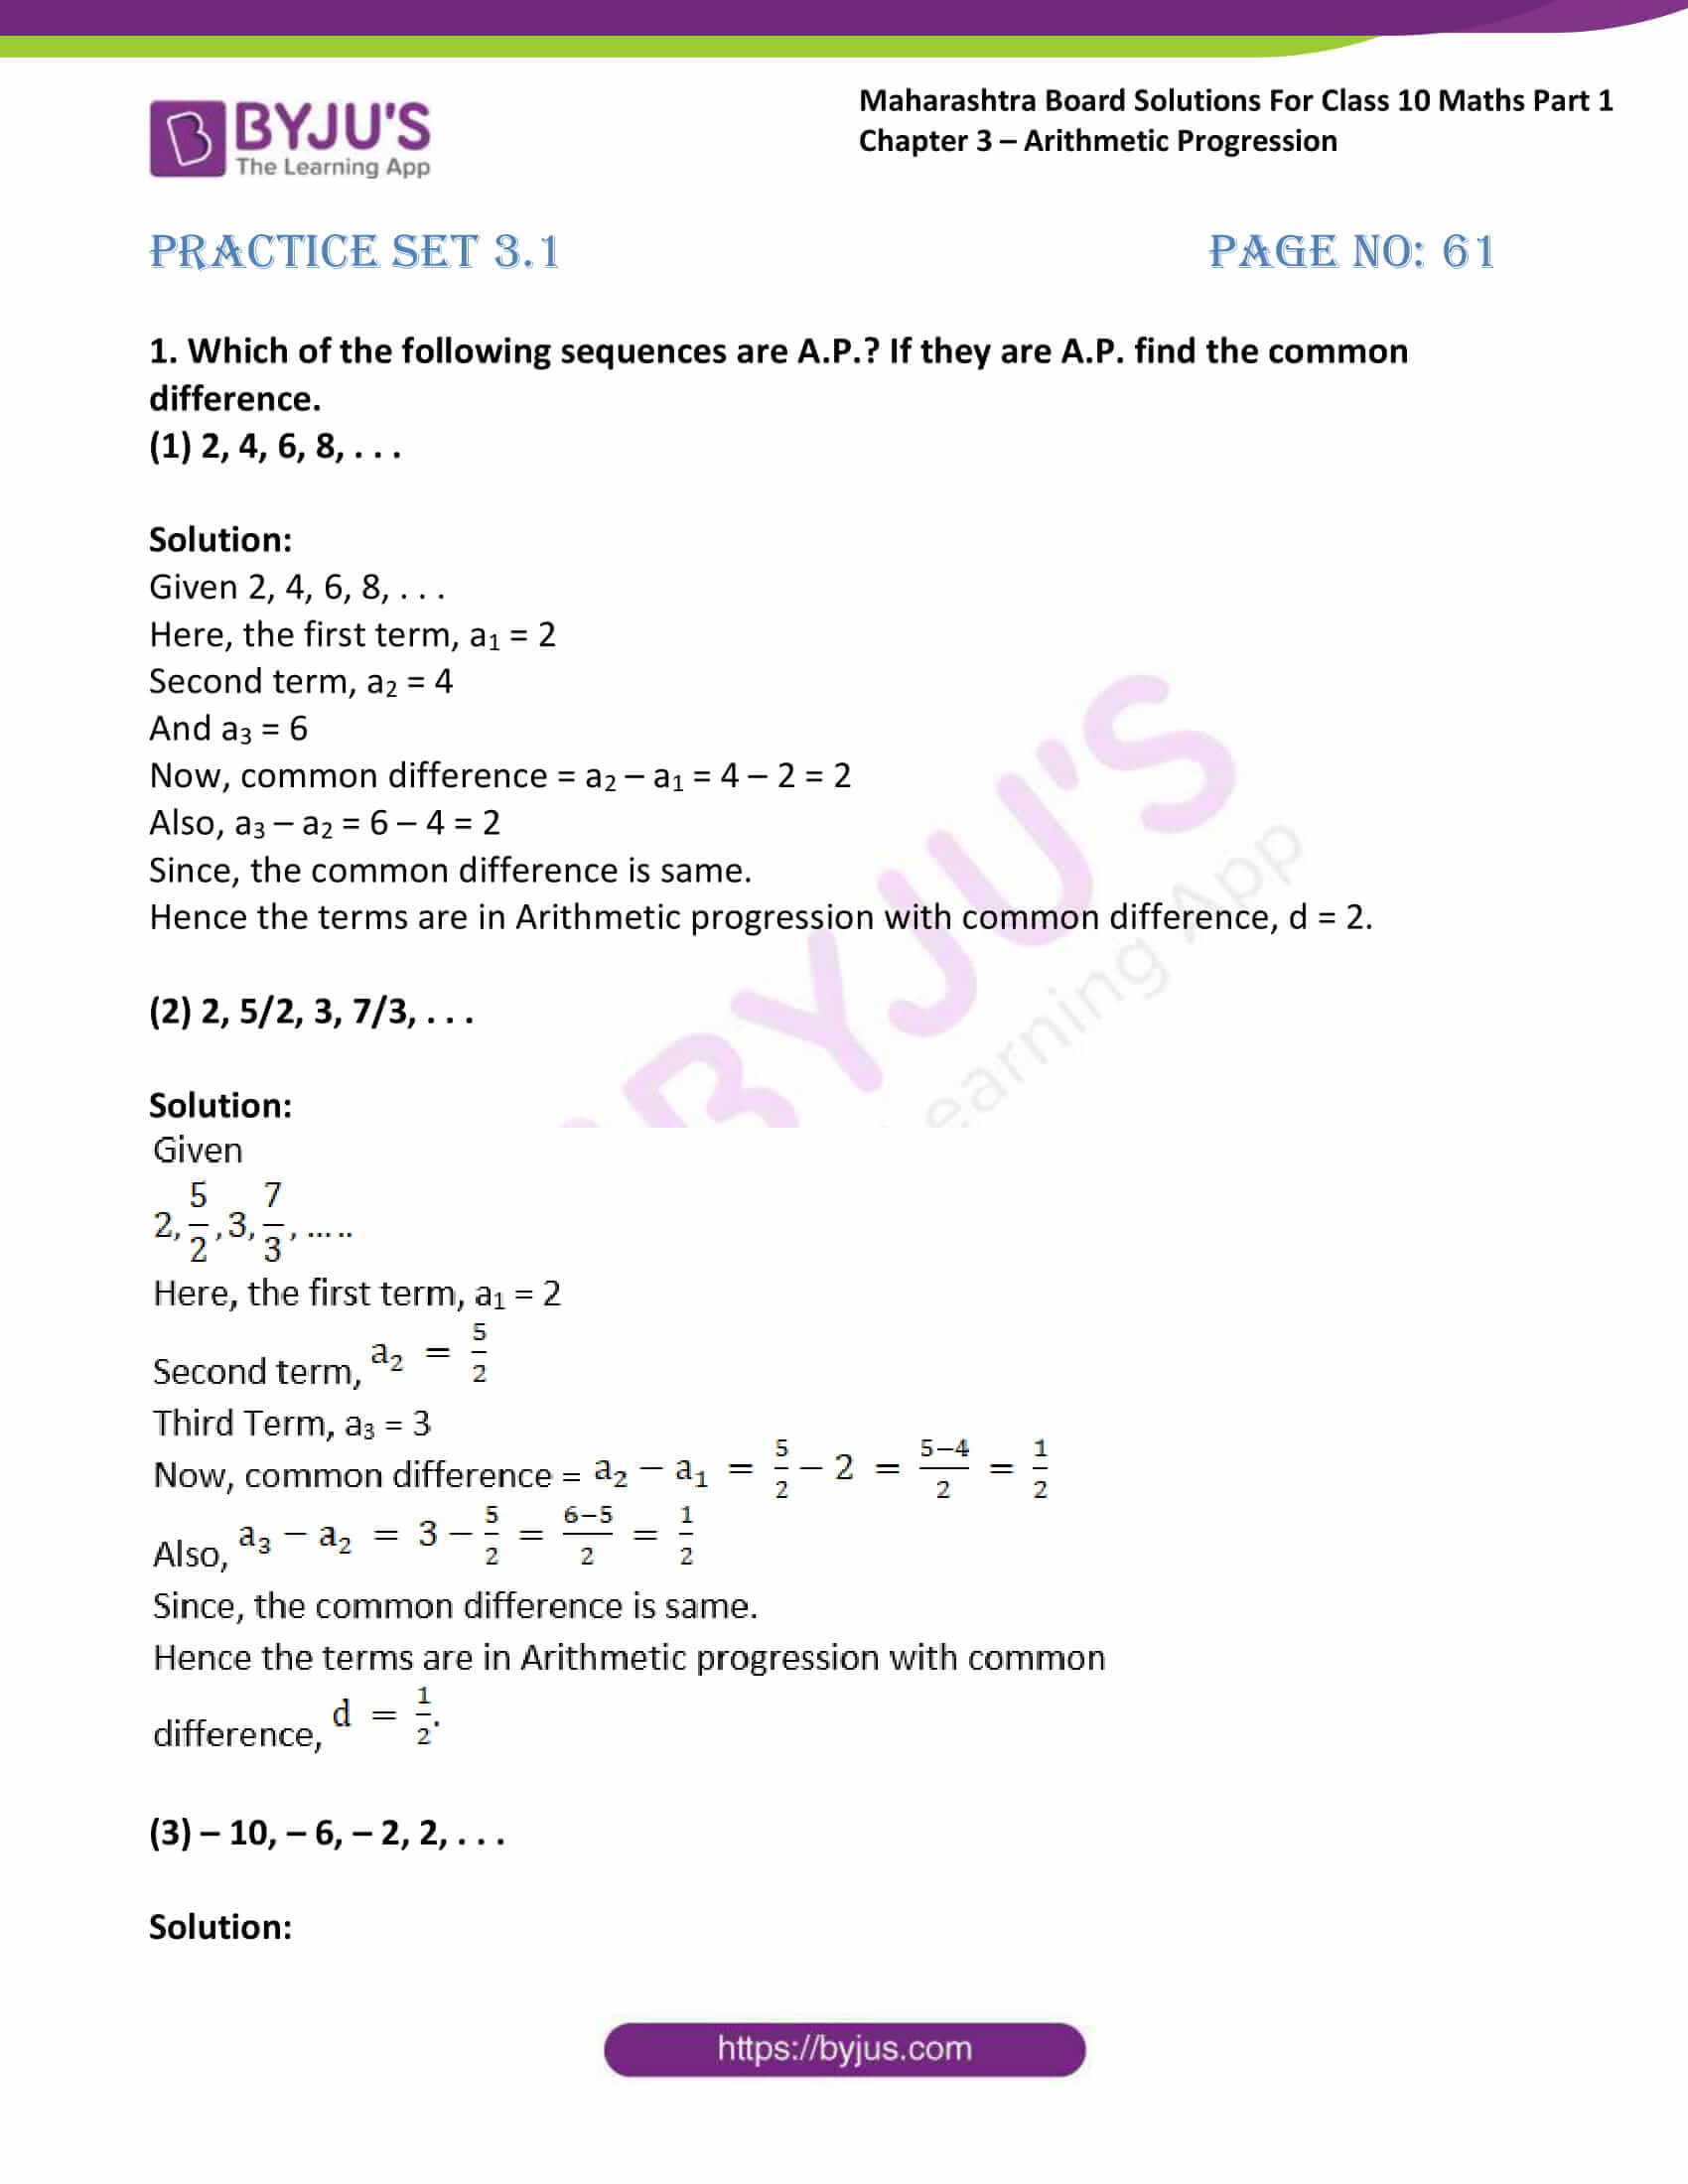 msbshse solutions class 10 maths part 1 chapter 3 01